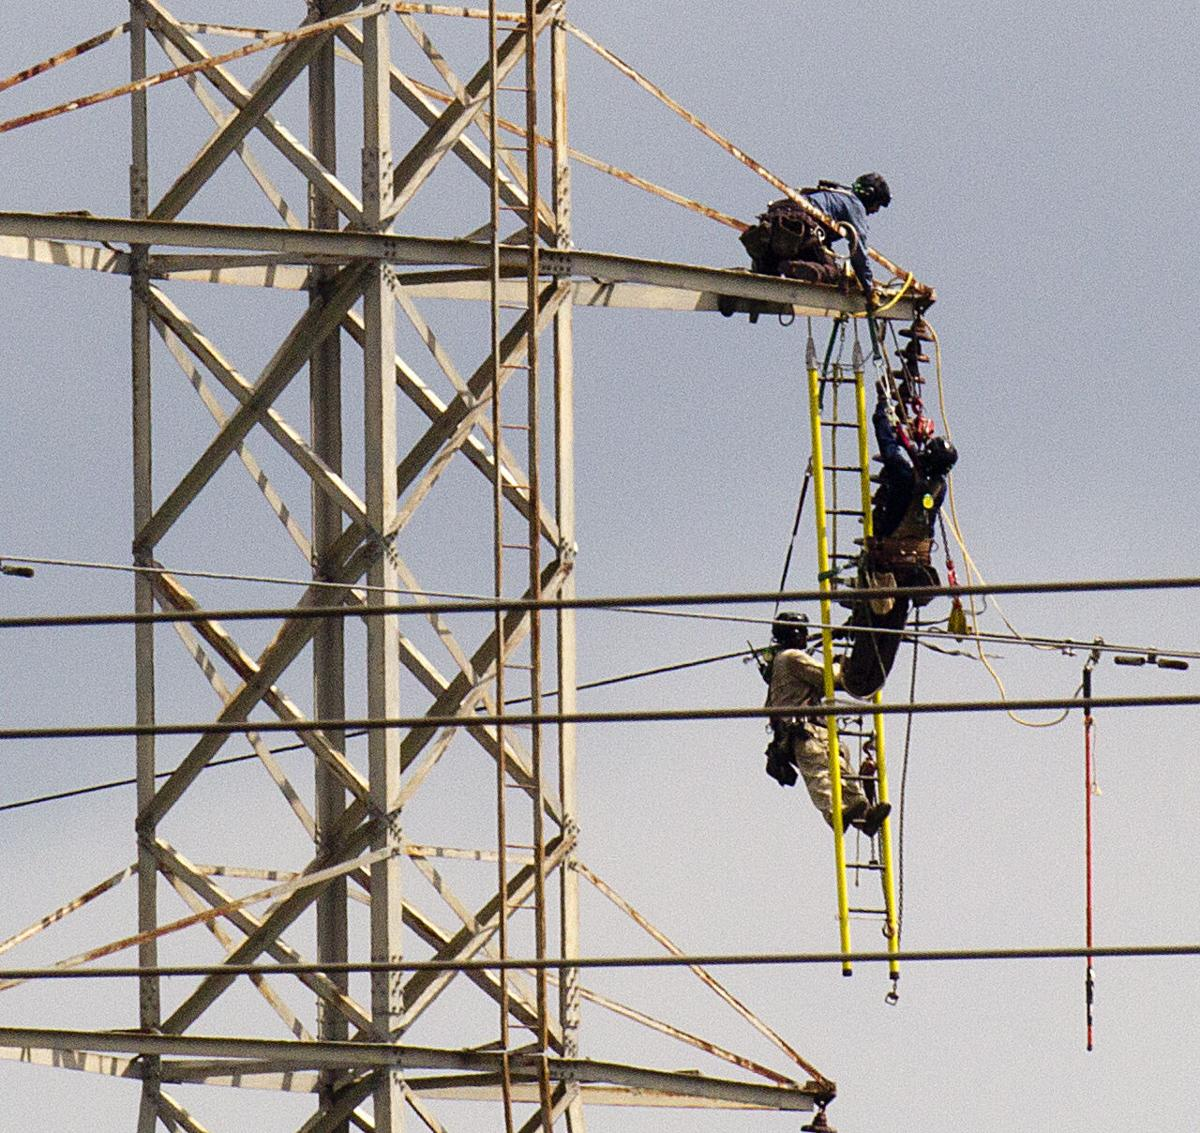 TVA transmission line work causes outage, workers ...